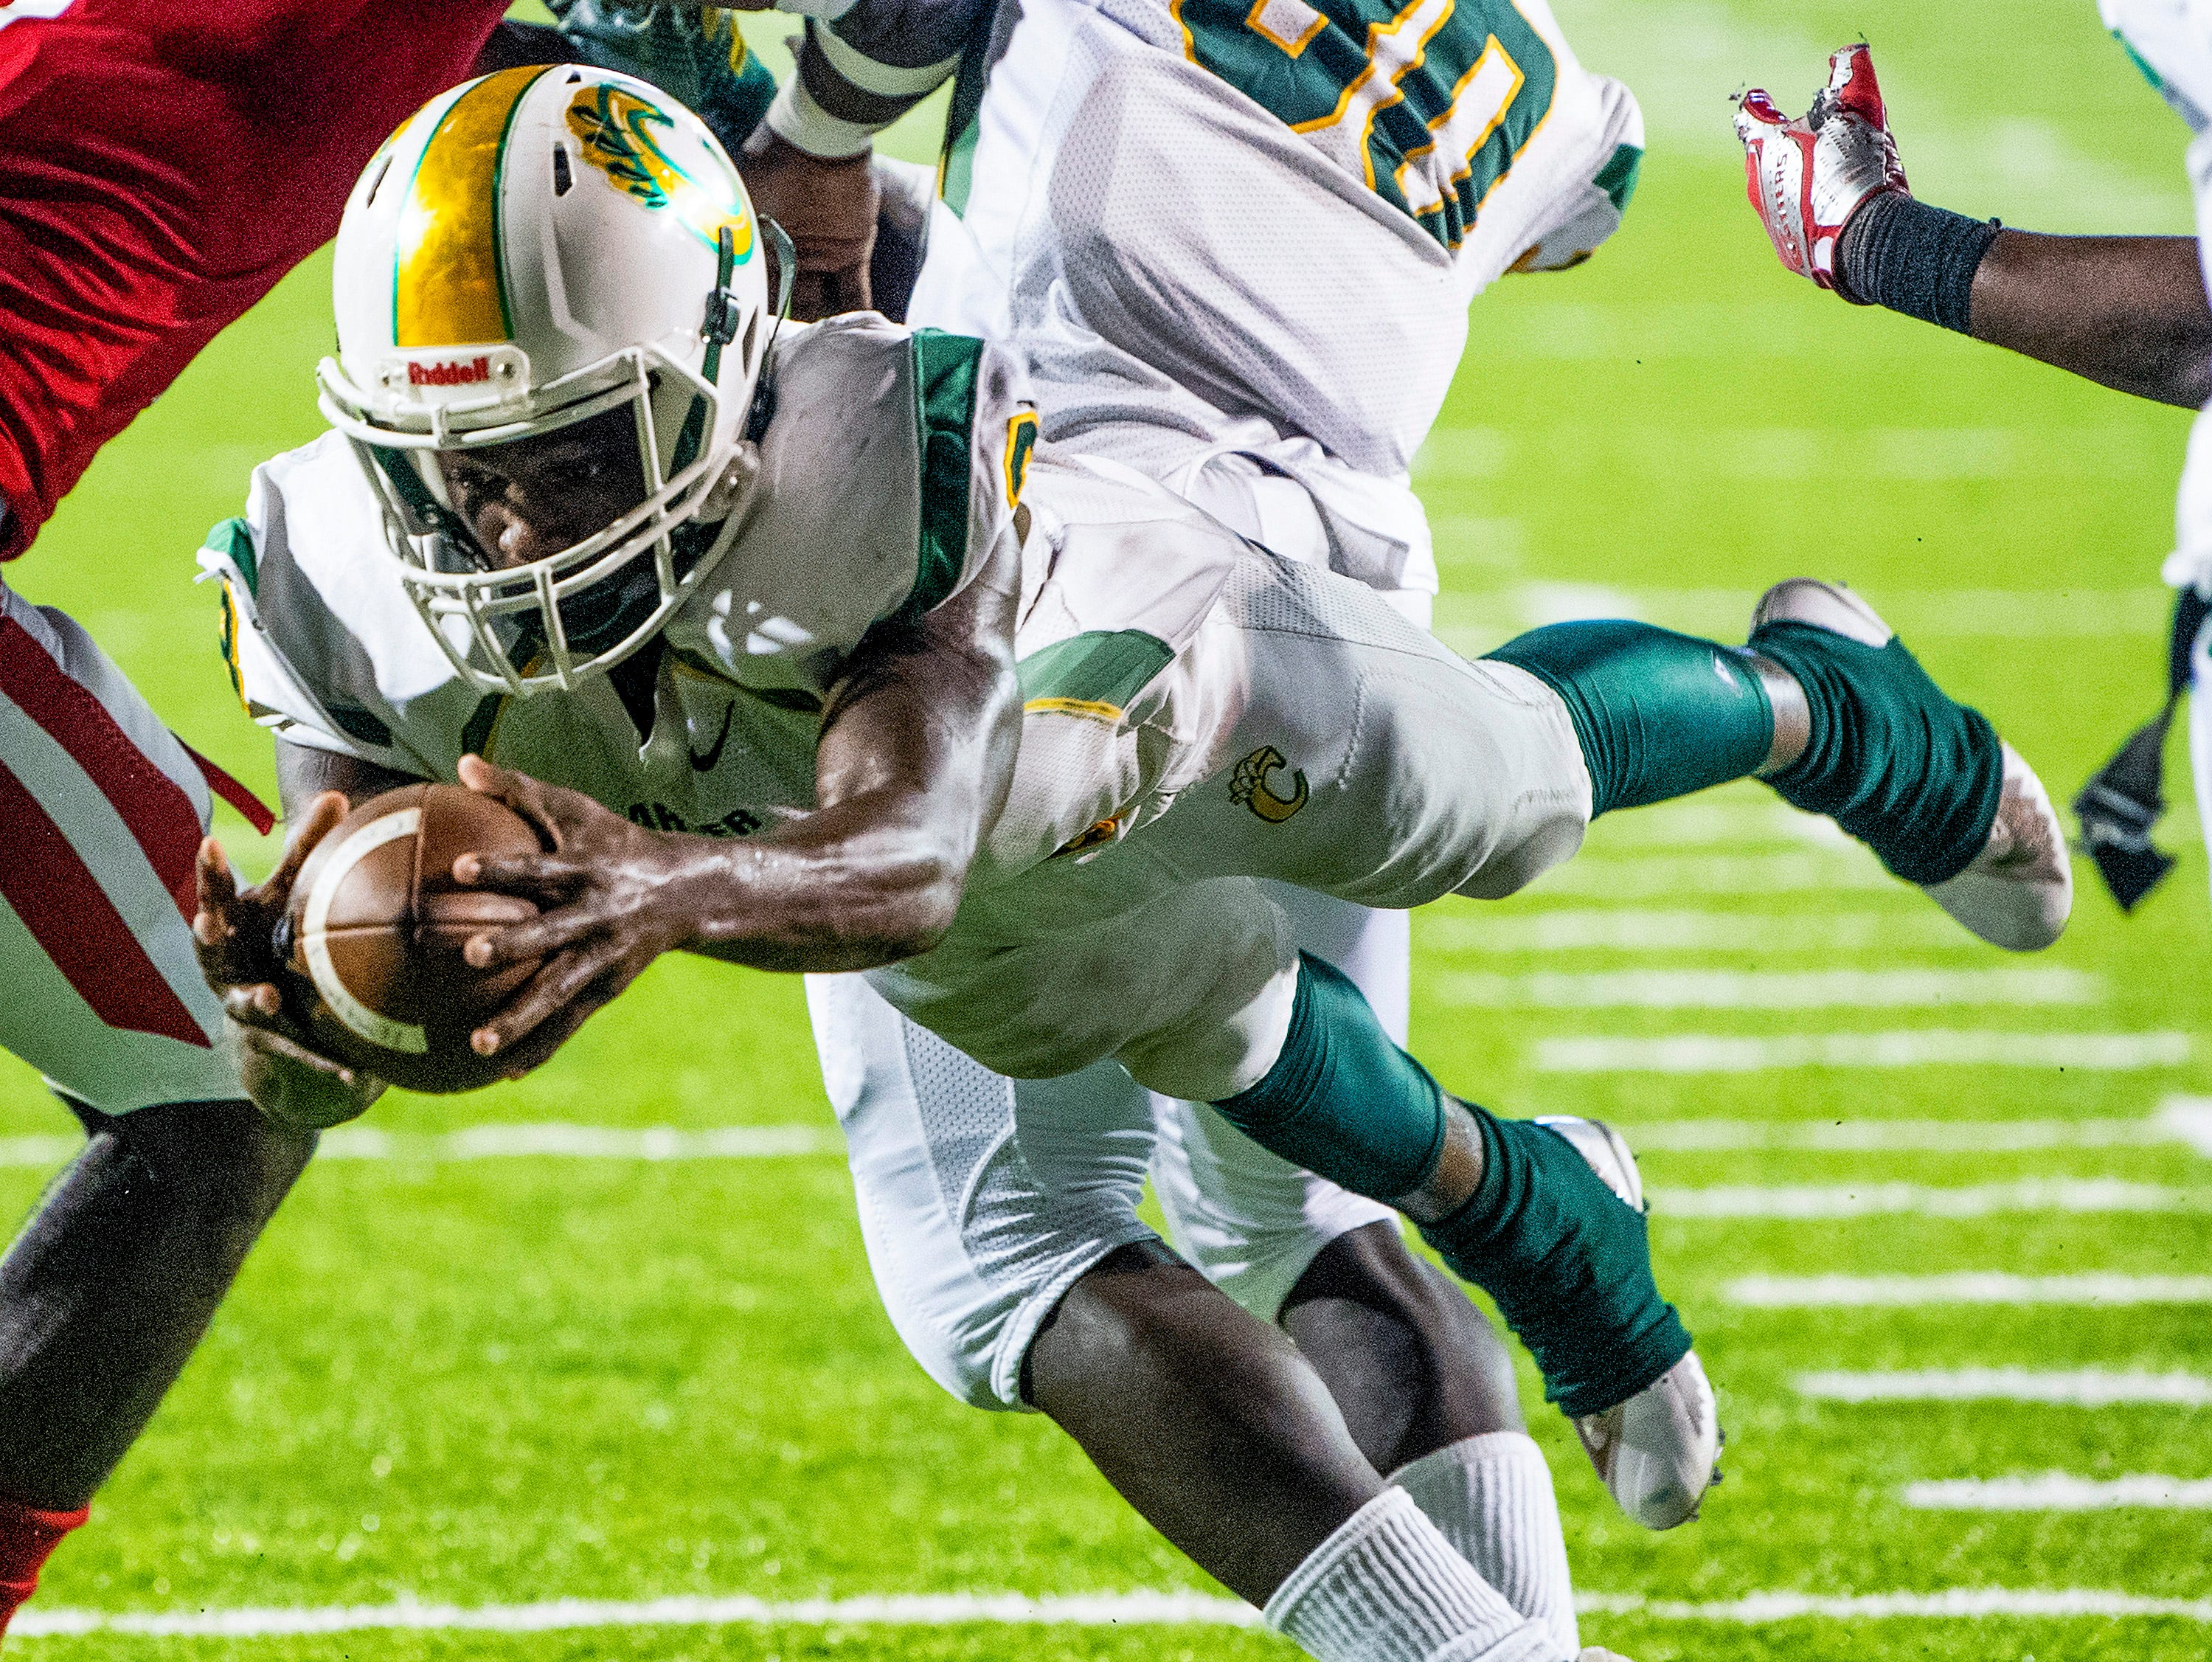 Carver's Terrance Webster dives in for a touchdown against Lee in first half action at Cramton Bowl in Montgomery, Ala., on Friday September 28, 2018.